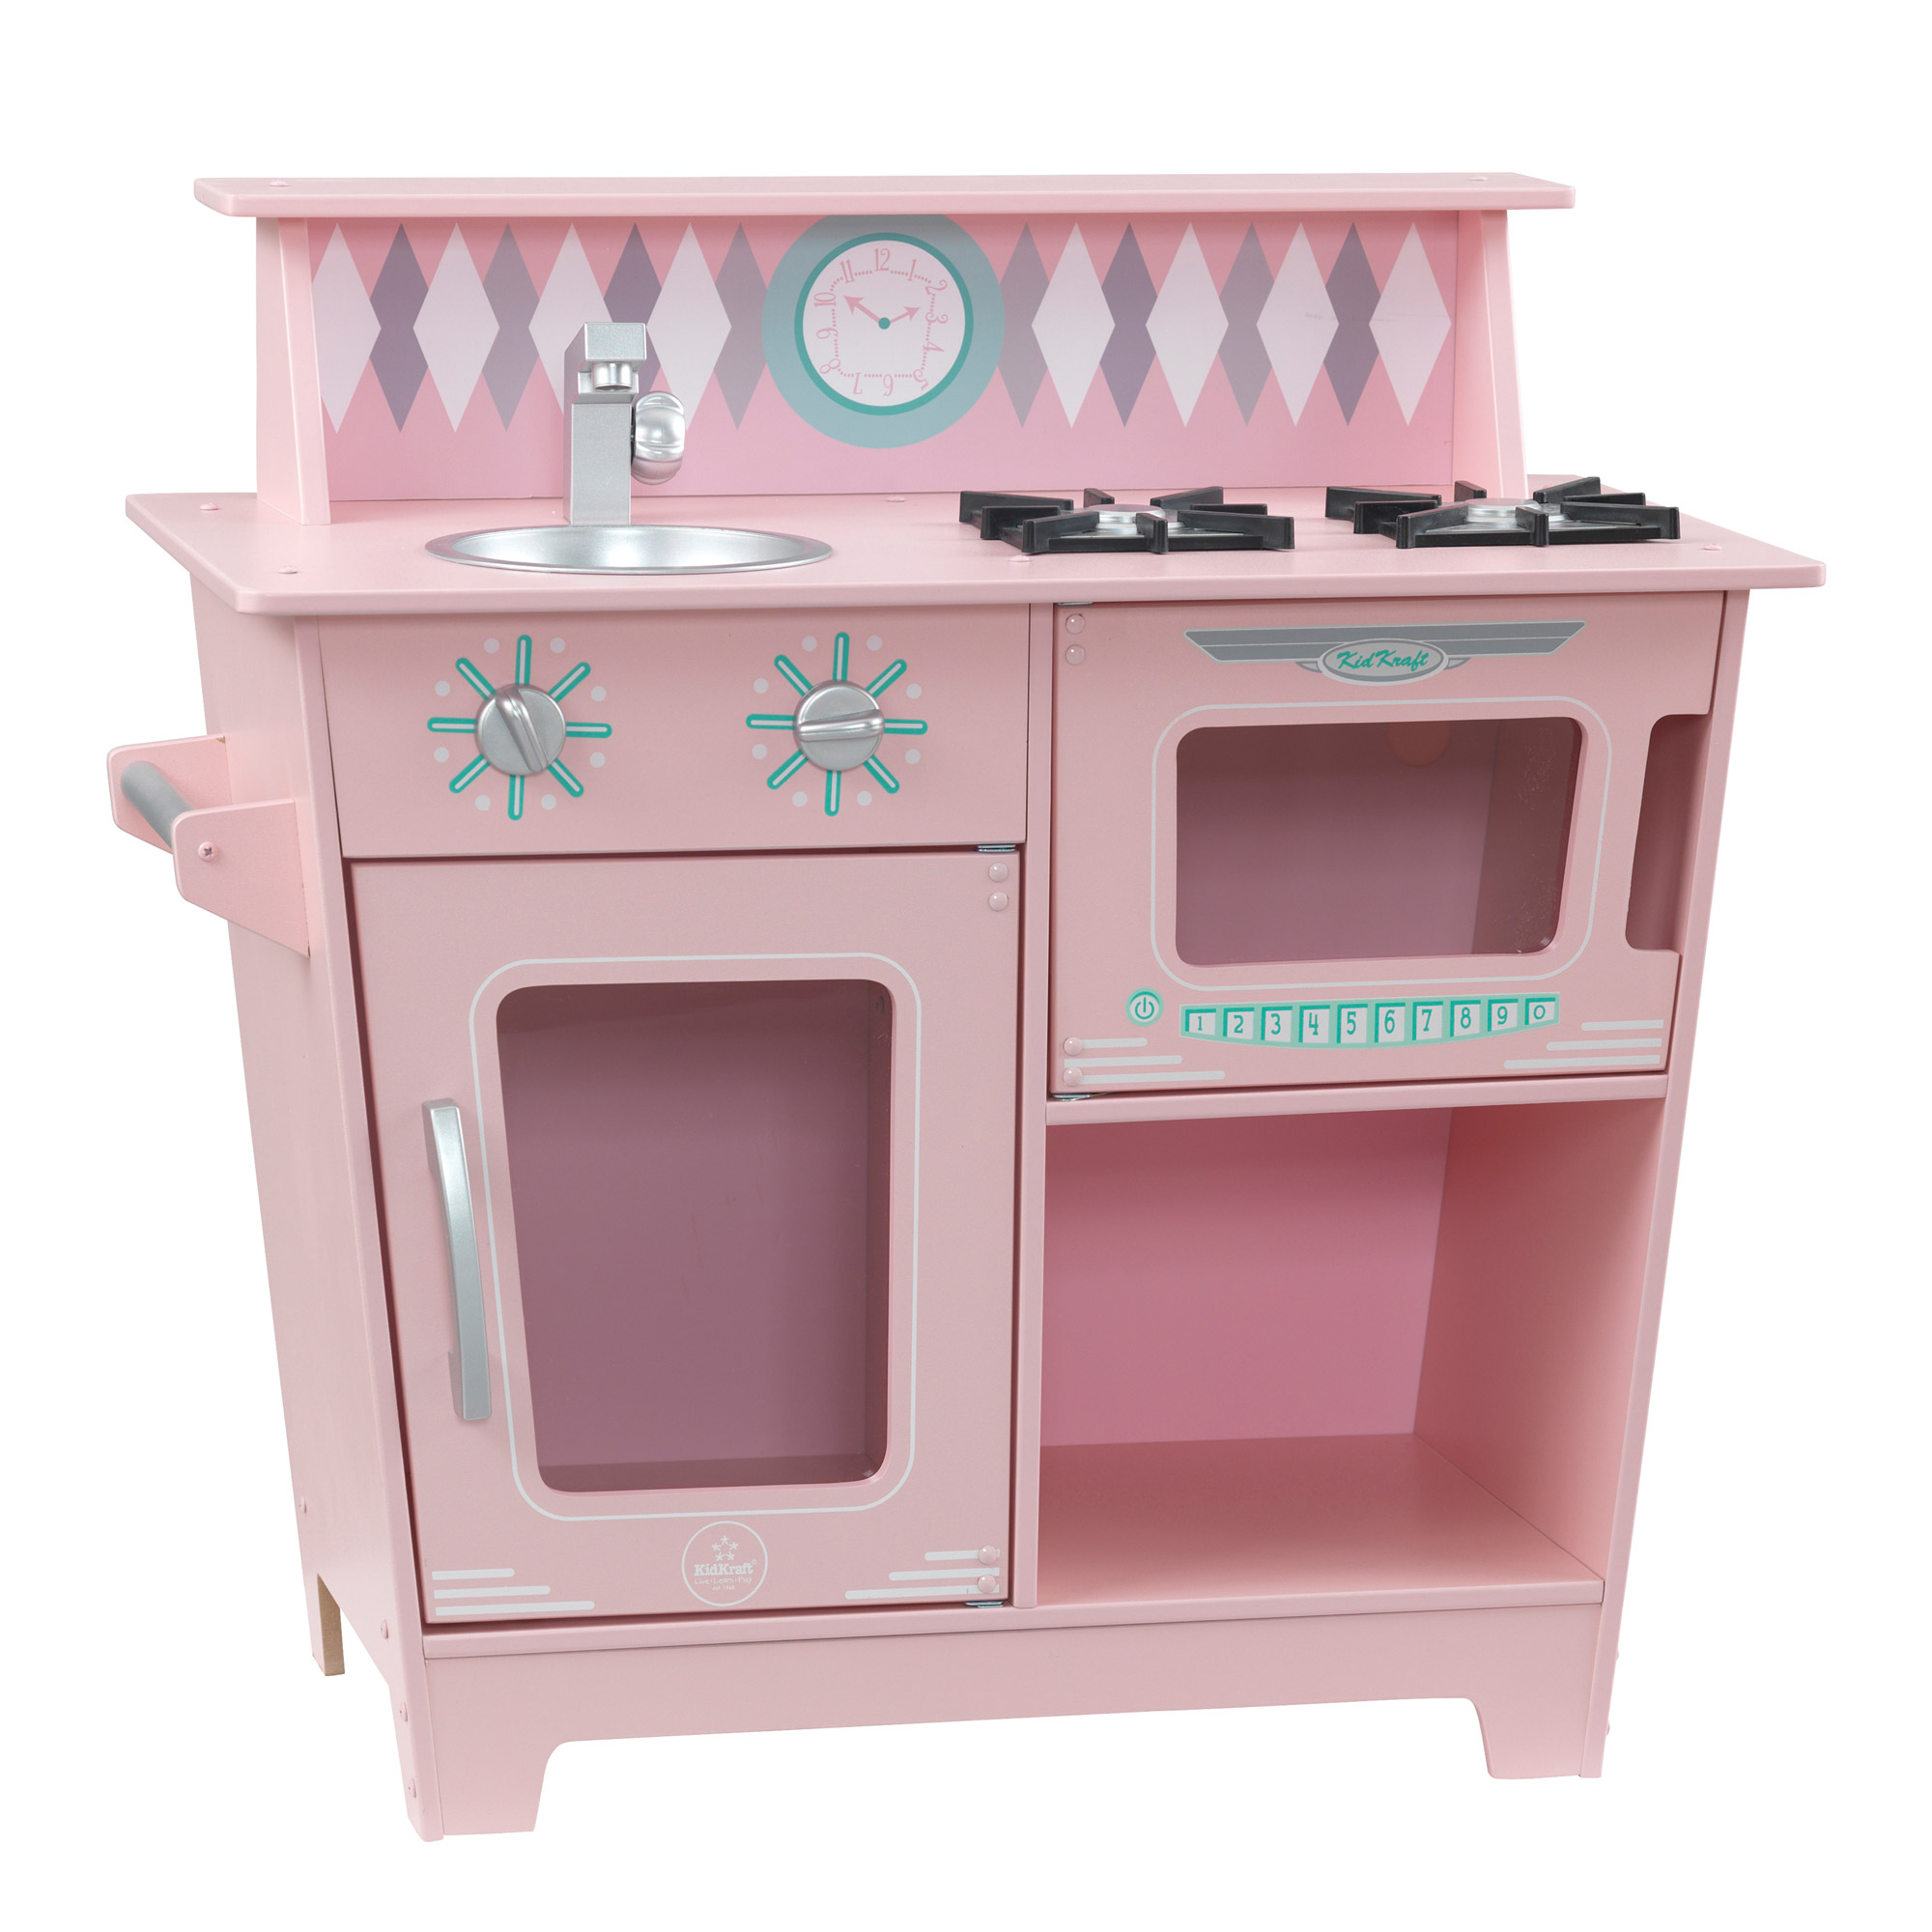 KidKraft Classic Wooden Pretend Play Cooking Kitchenette Toy Set for Kids, Pink by KidKraft